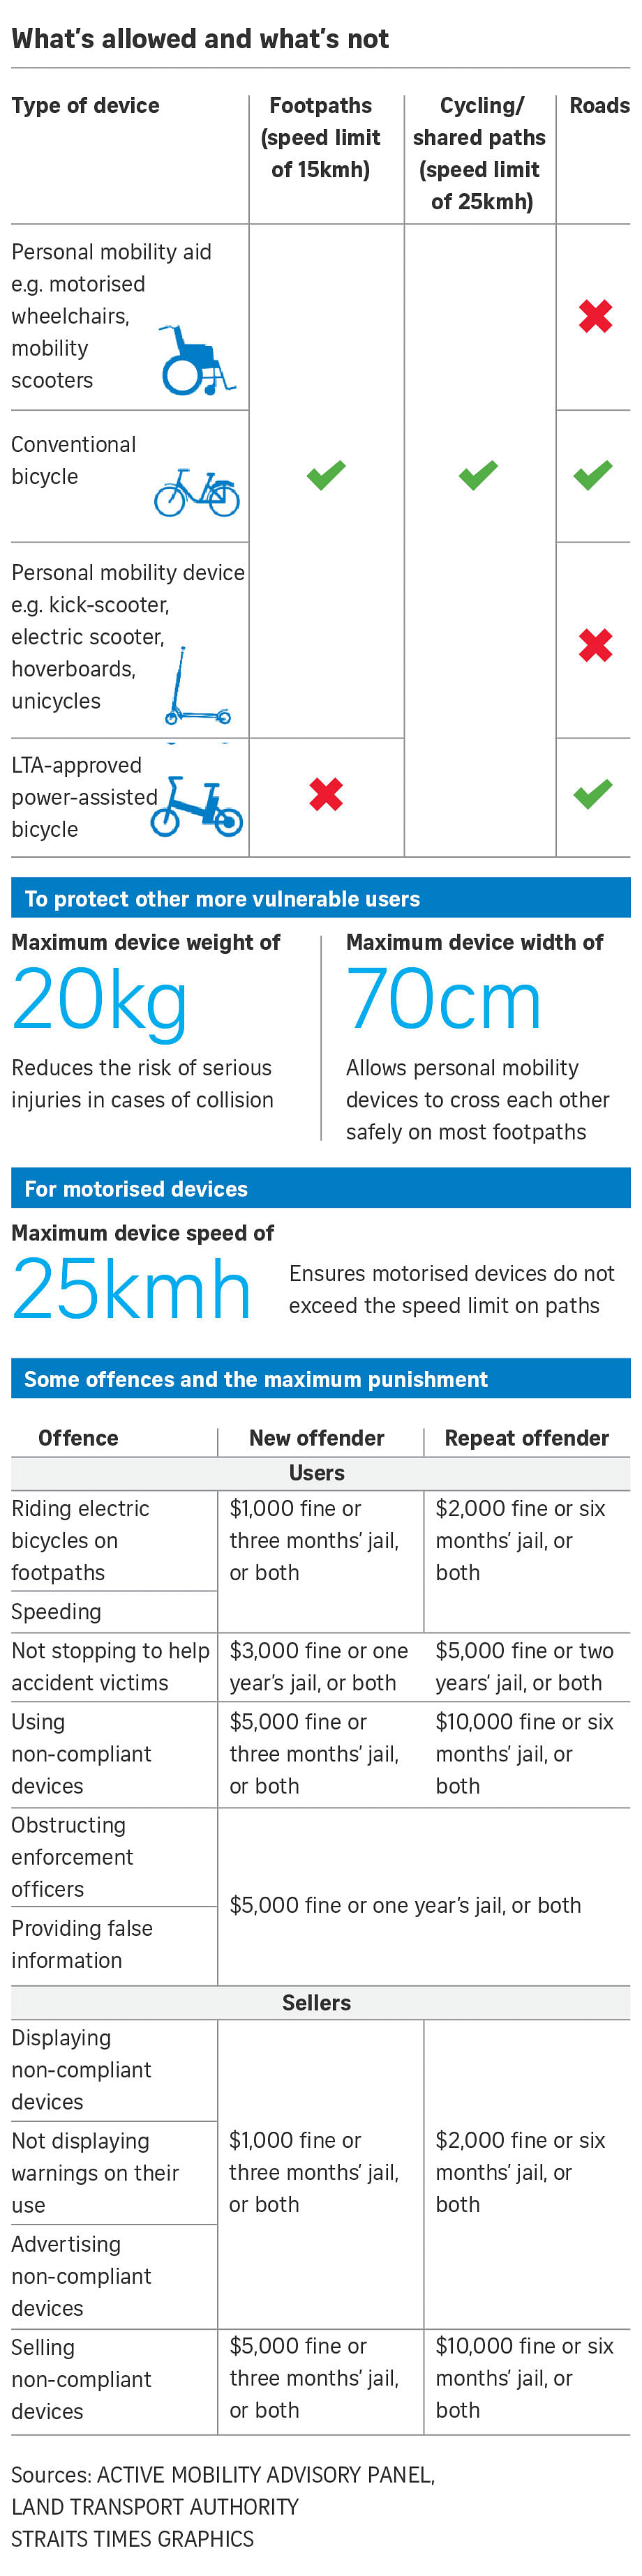 Speed guns deployed to curb reckless riding by e-scooter